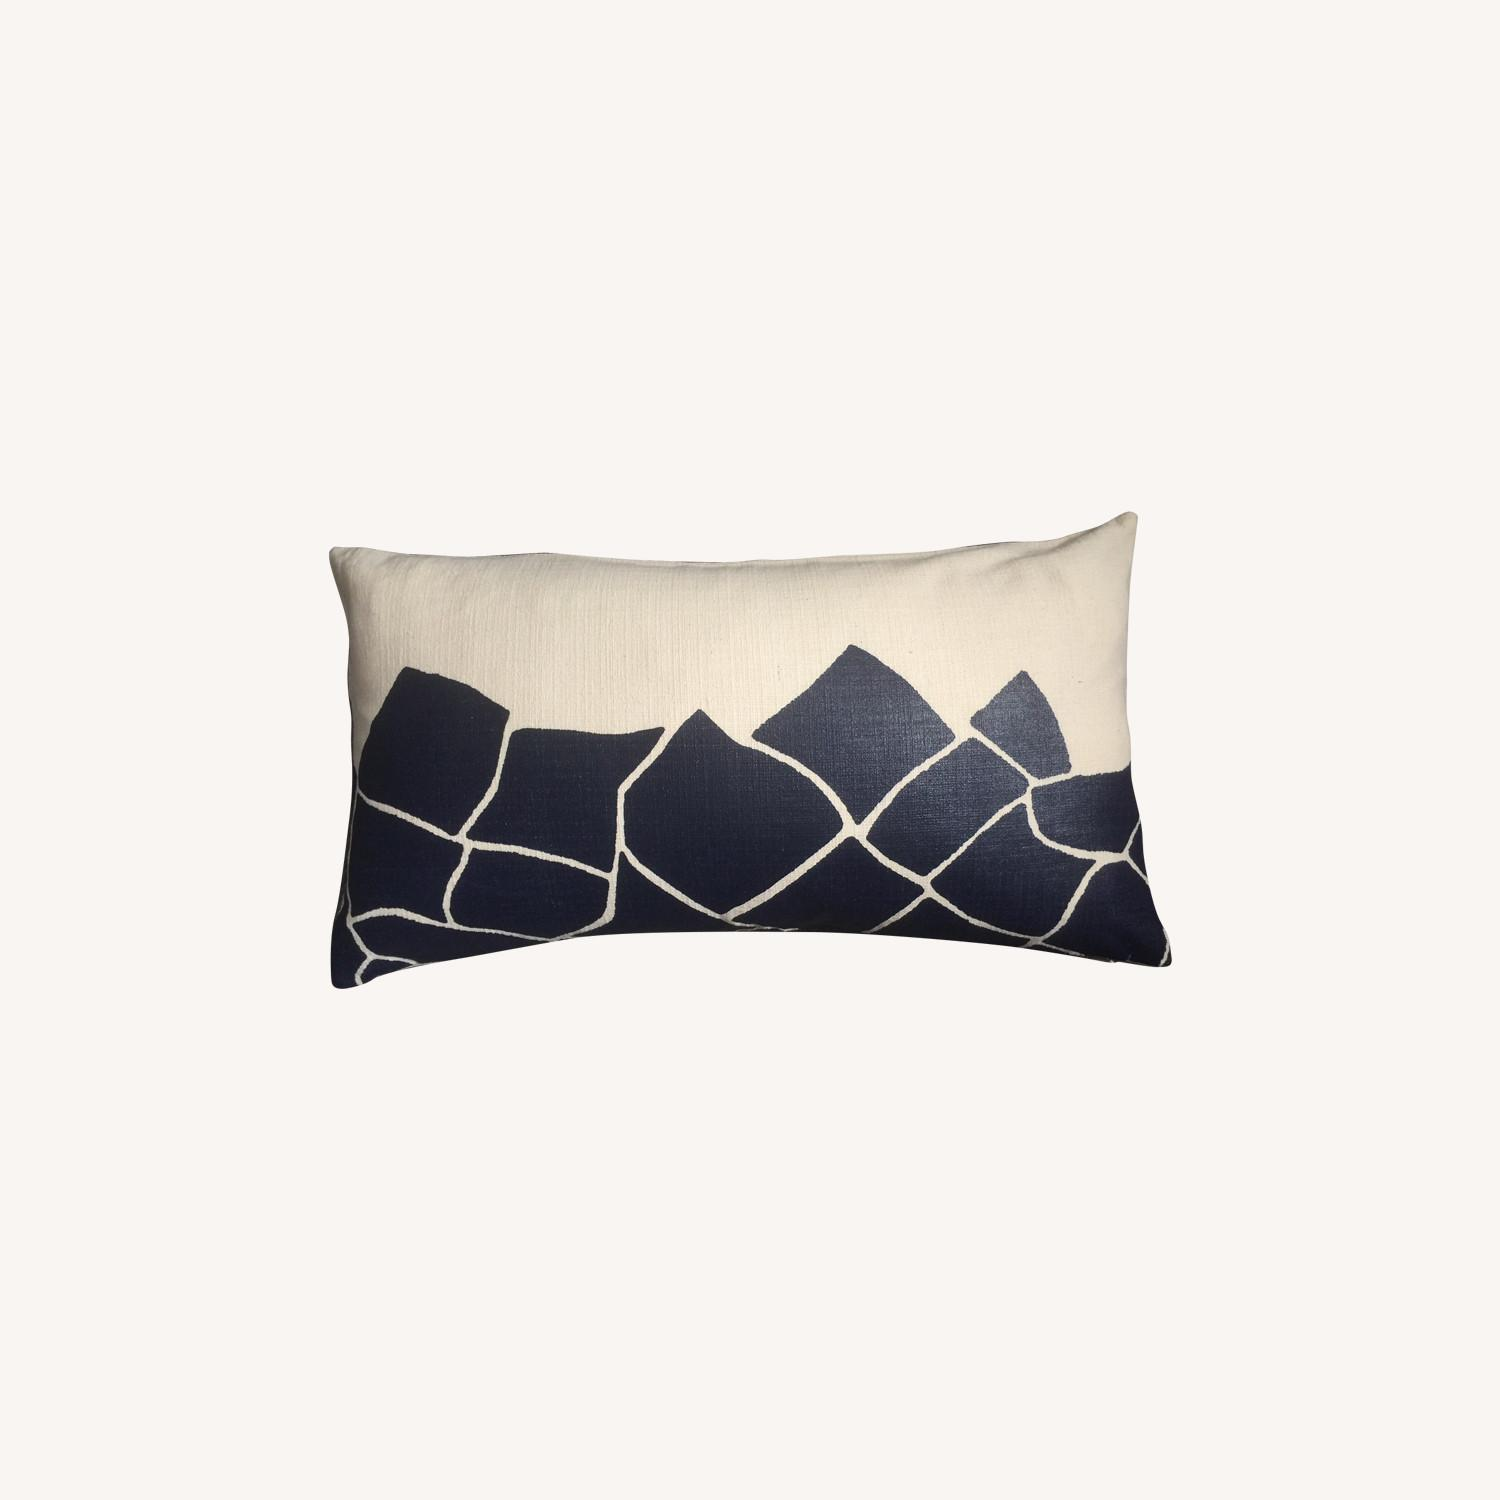 Cubist Midnight Blue Printed Pillow